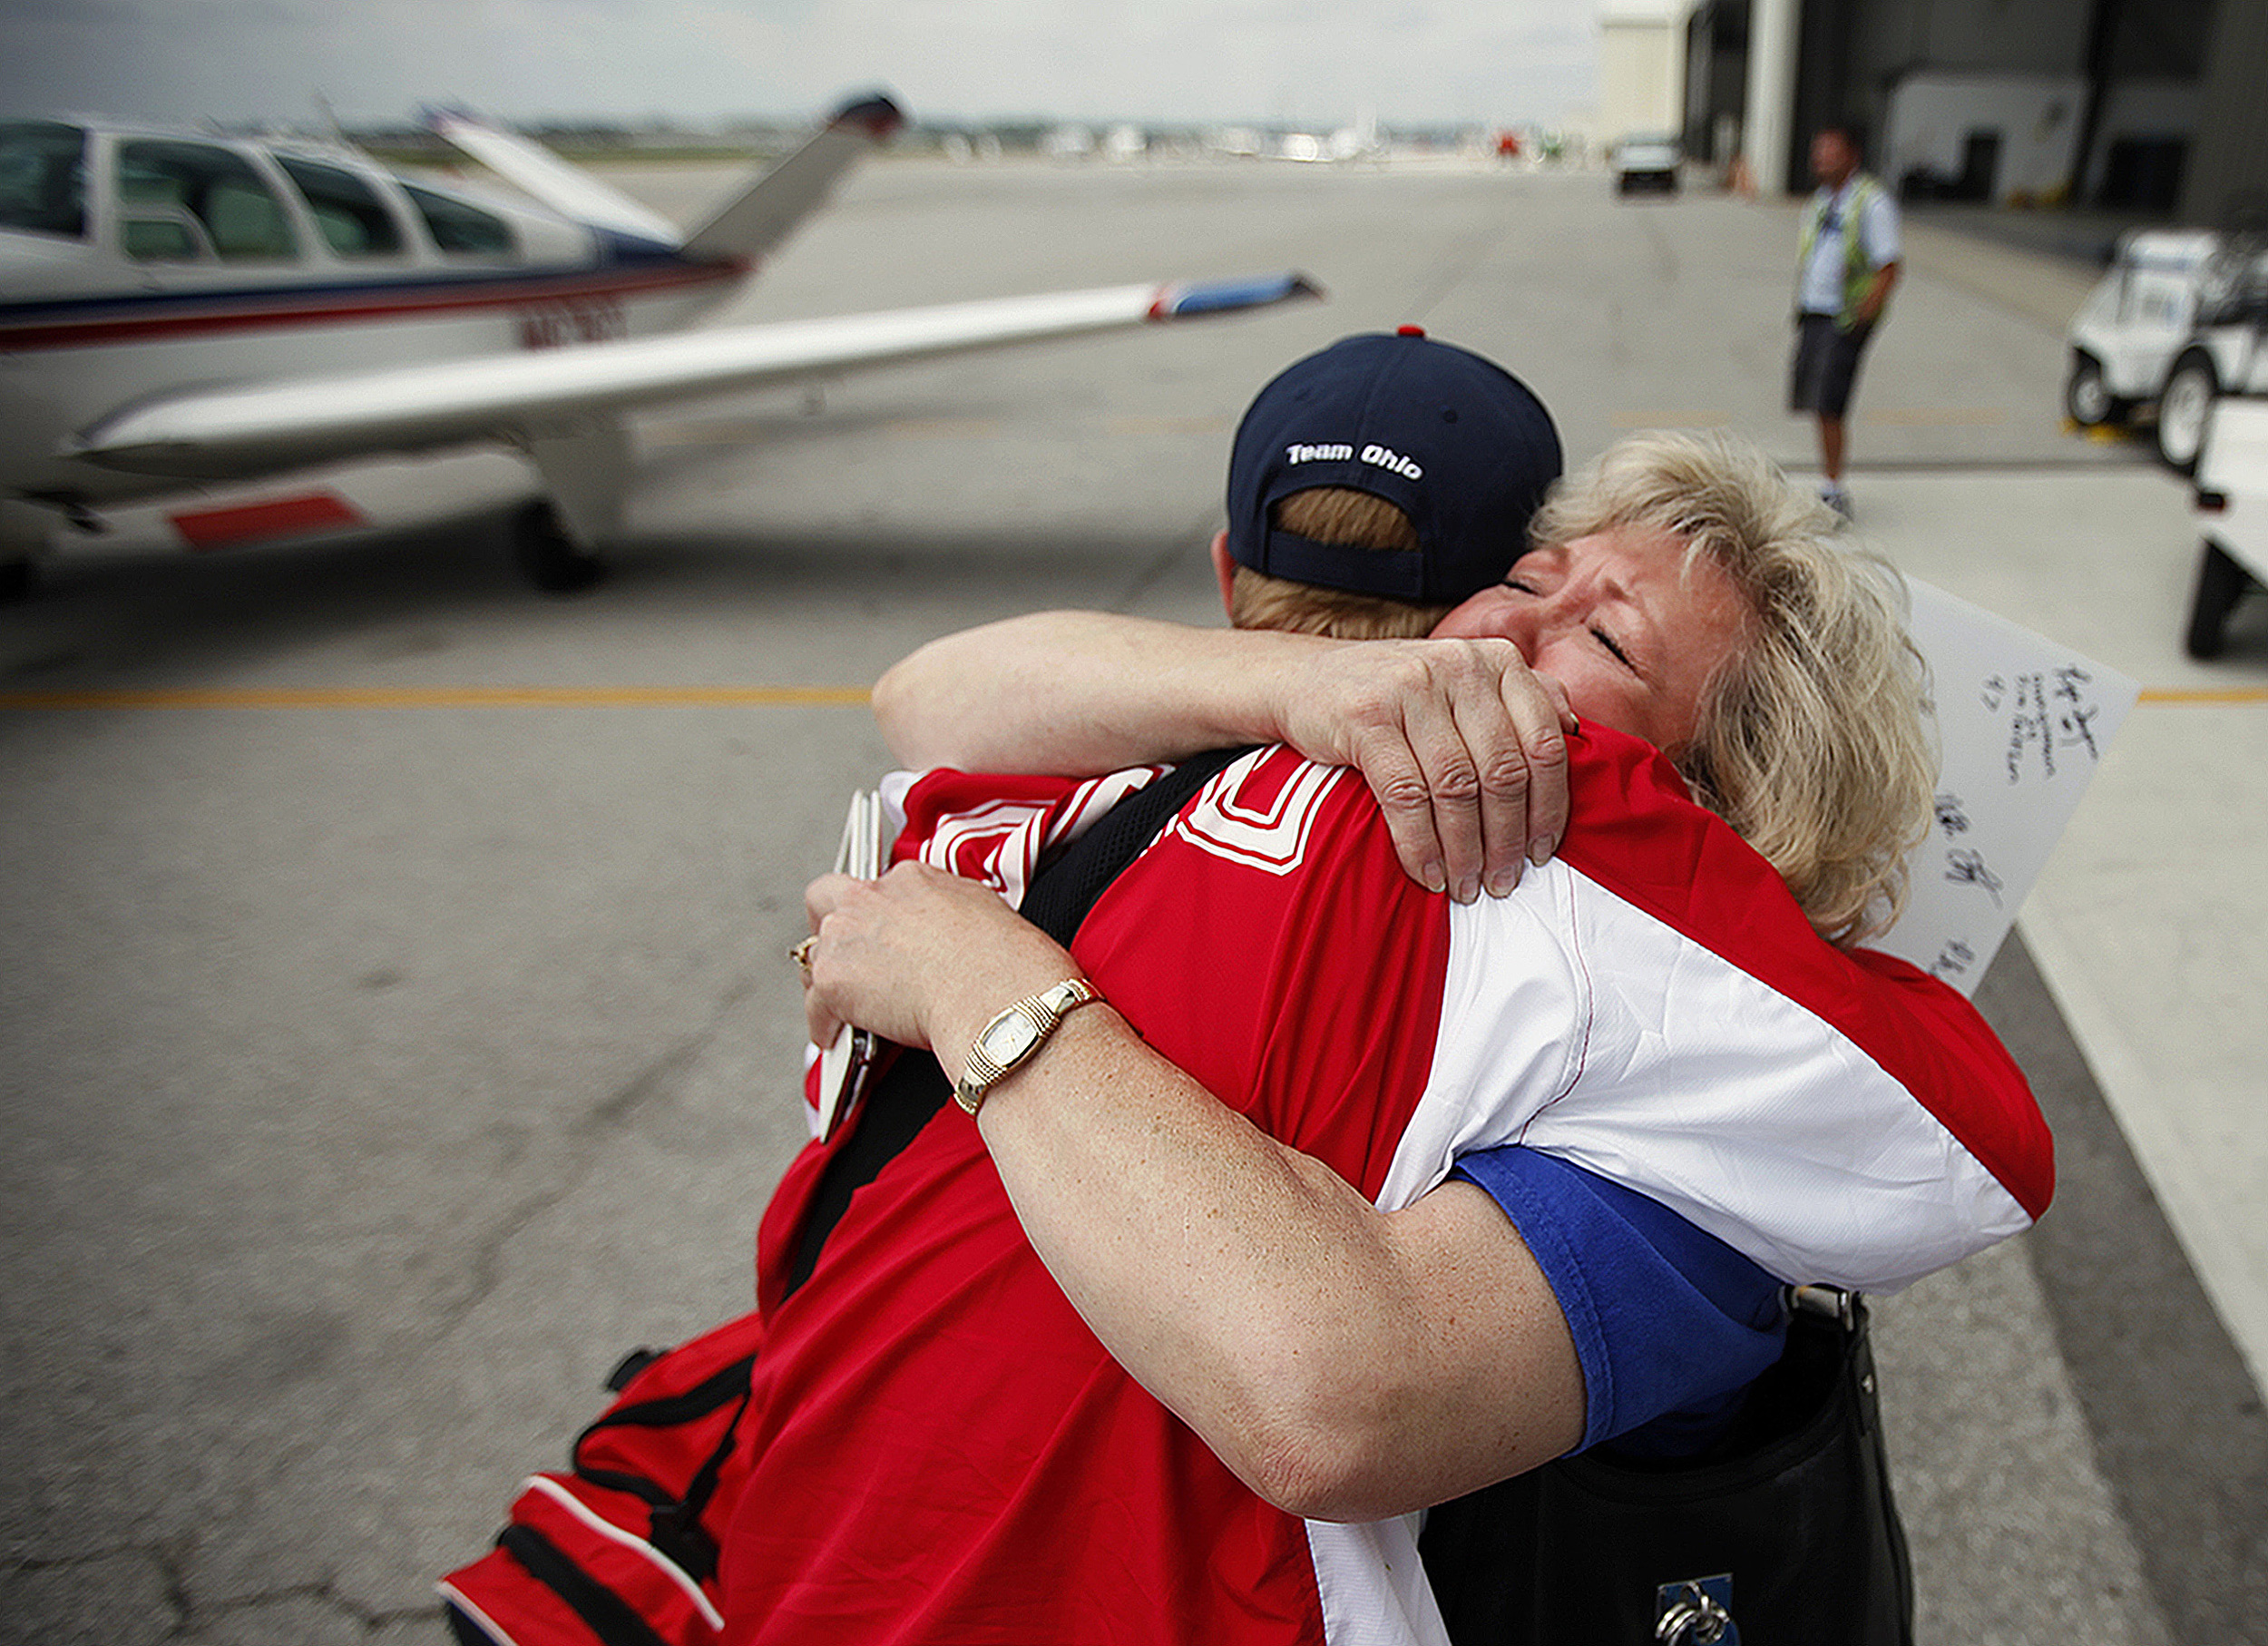 Cory Anatangelo, of Ohio's gold medal-winning Special Olympics softball team, embraces mother Pam Anatangelo, who sheds tears of joy as she welcomes him home from New Jersey, at the Lane Aviation terminal of Columbus International Airport in Ohio, Saturday, June 21, 2014. The softball team won a gold medal.